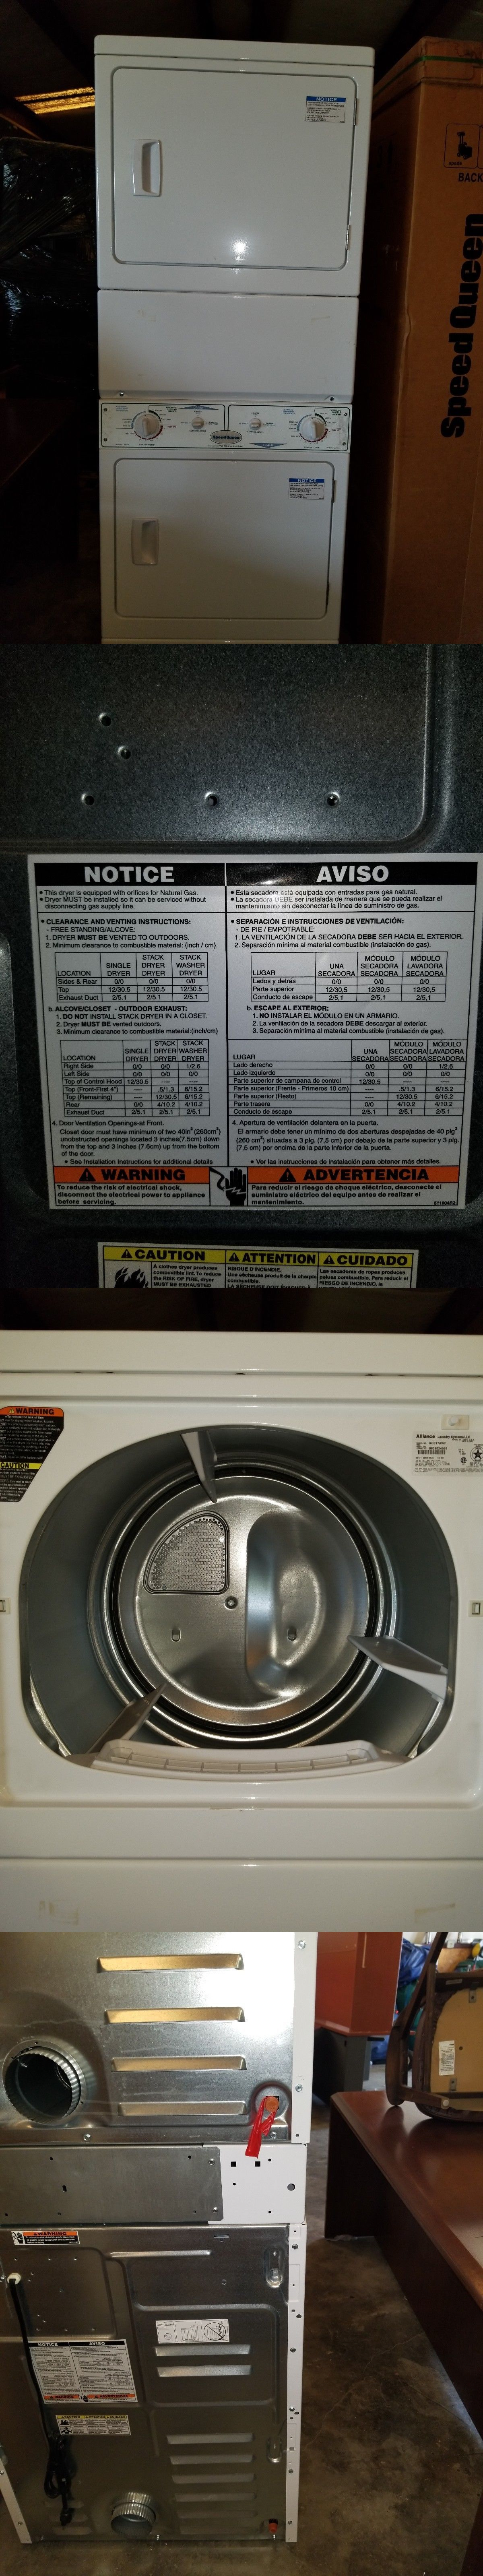 Washing Machines 71256 New Speed Queen Double Stack Dryers